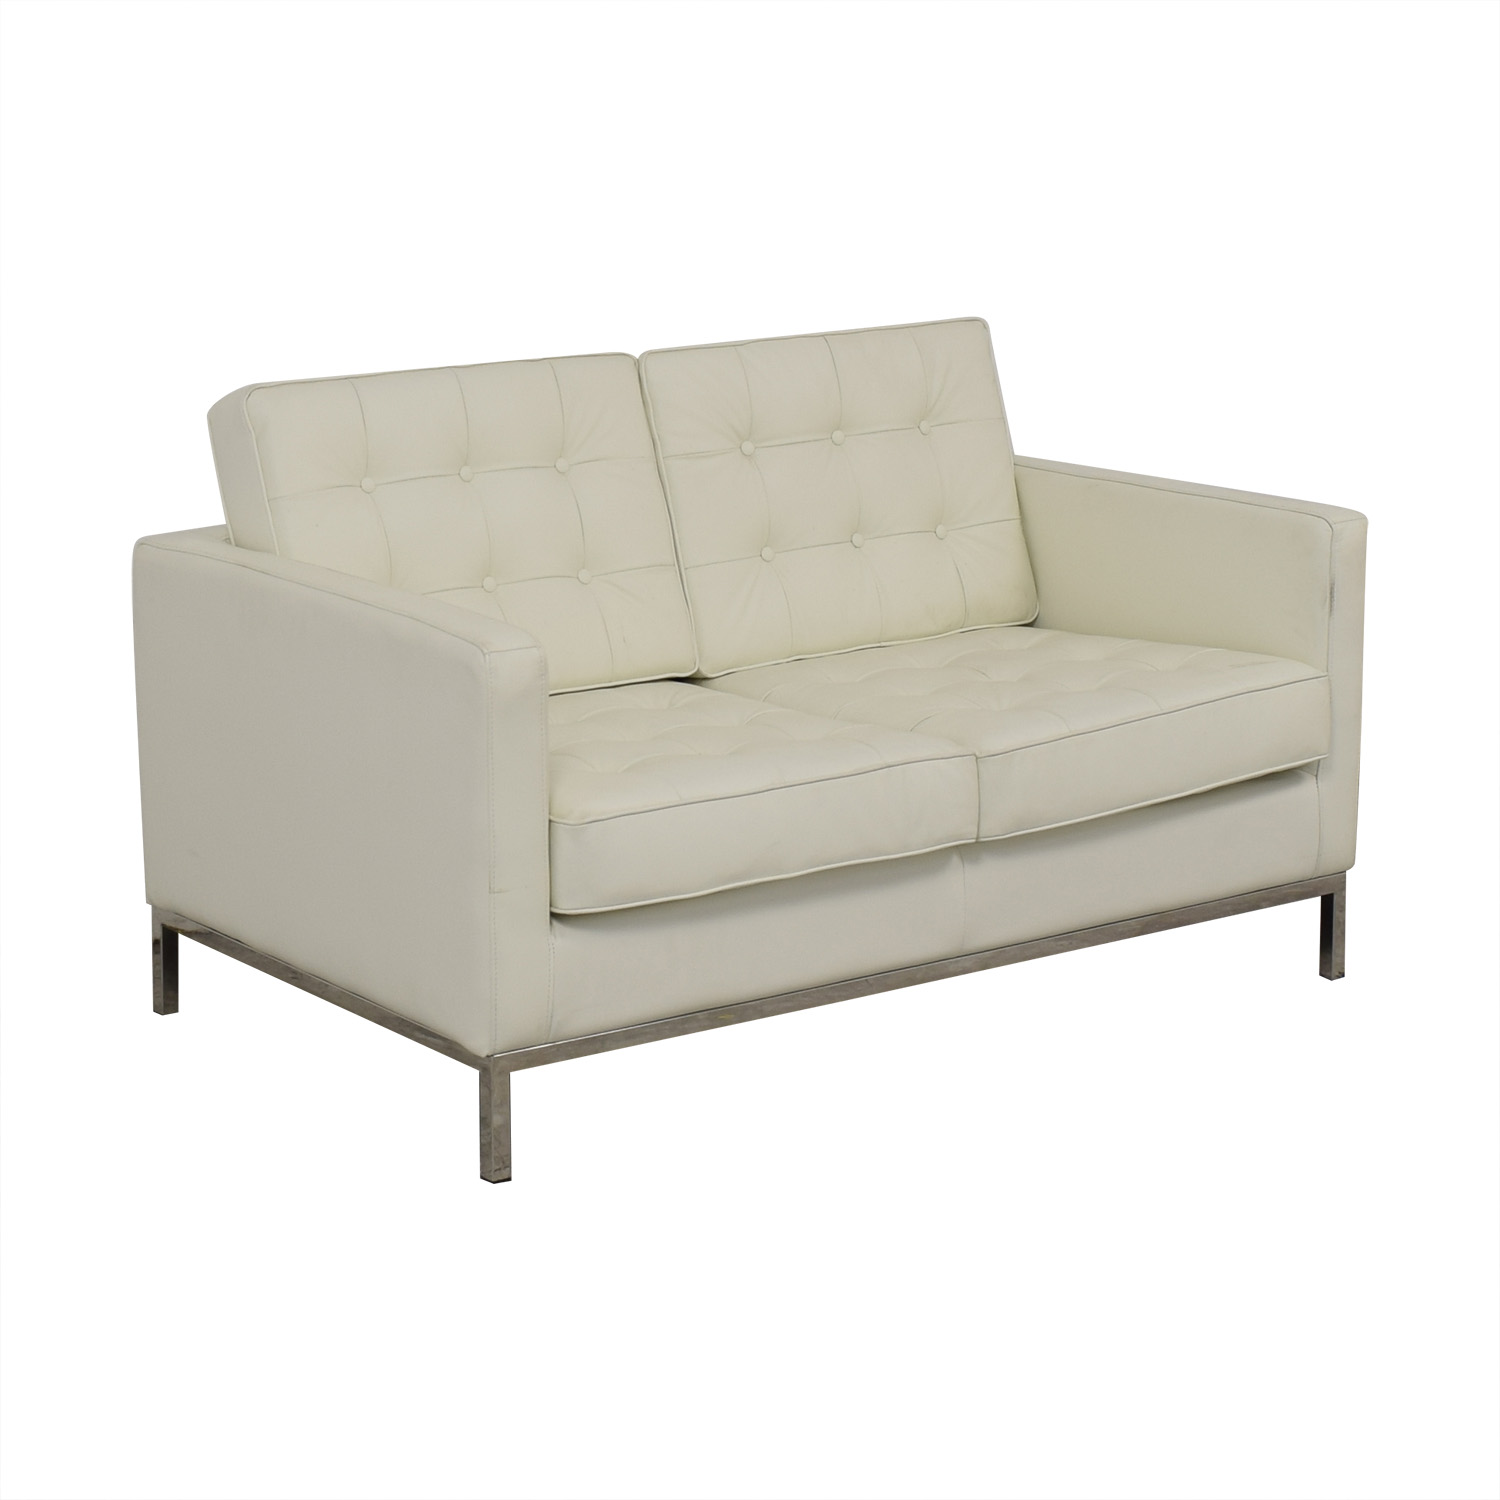 86 Off Control Brand Control Brand Mid Century Tufted Loveseat Sofas